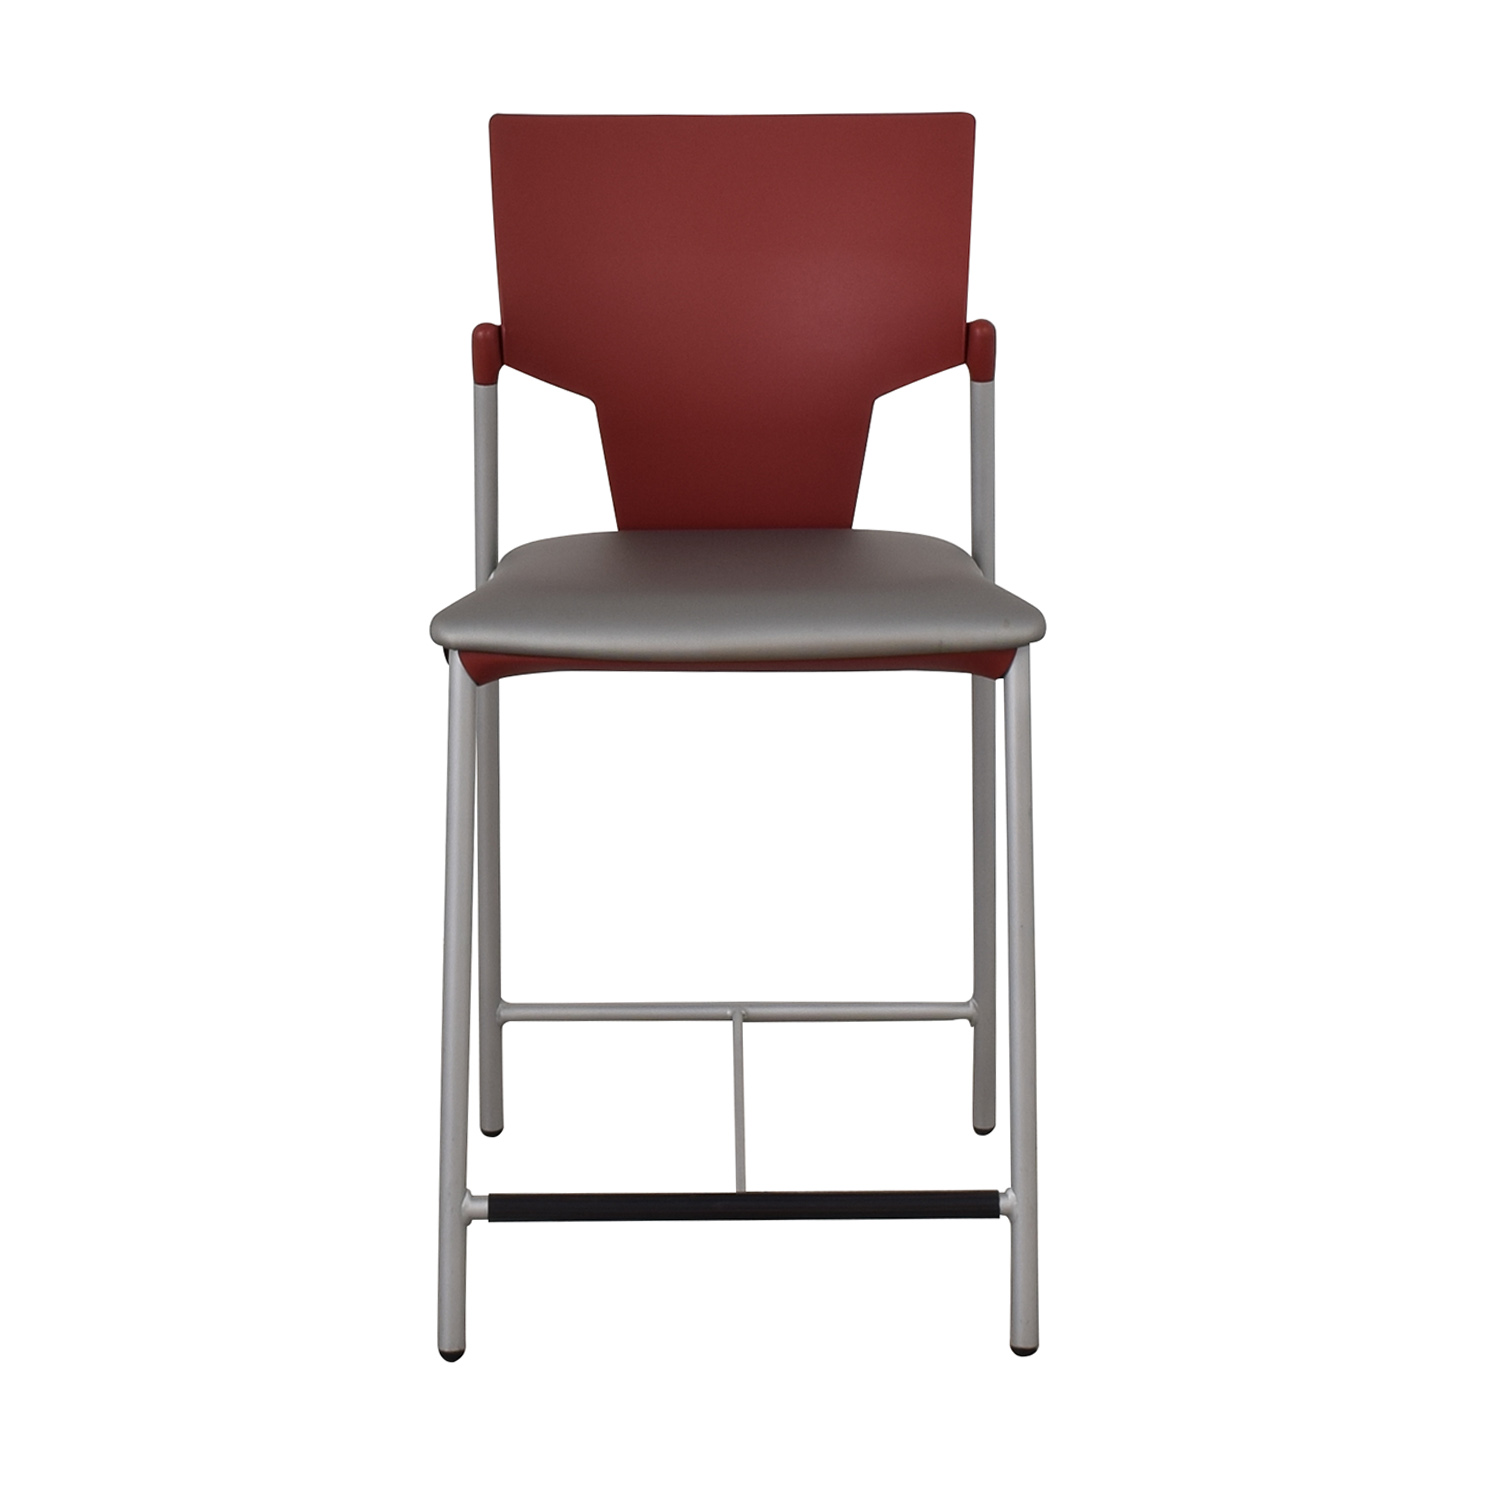 Officeworks Officeworks Bar Stool second hand